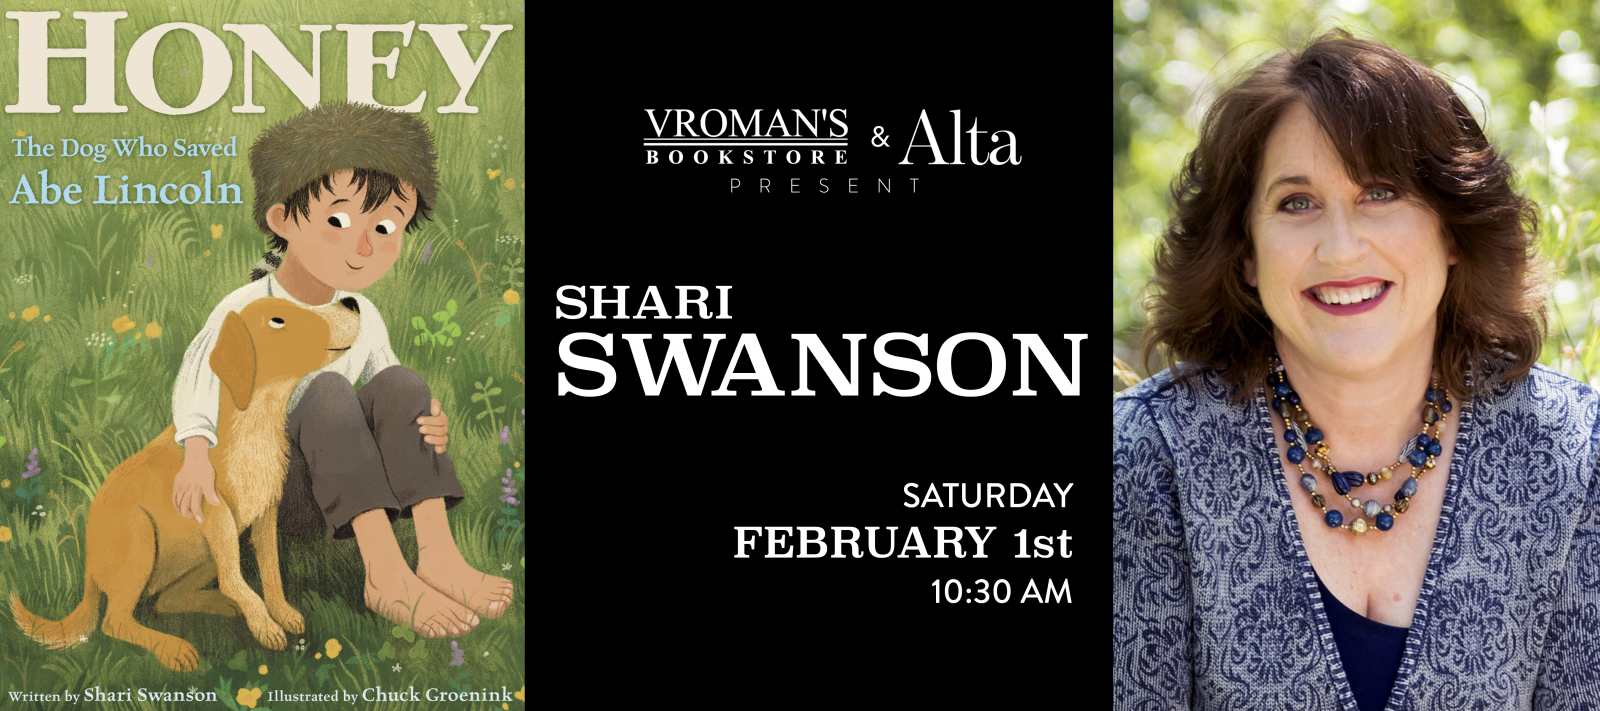 Book Signing with Shari Swanson on Saturday, February 1 at 10:30am